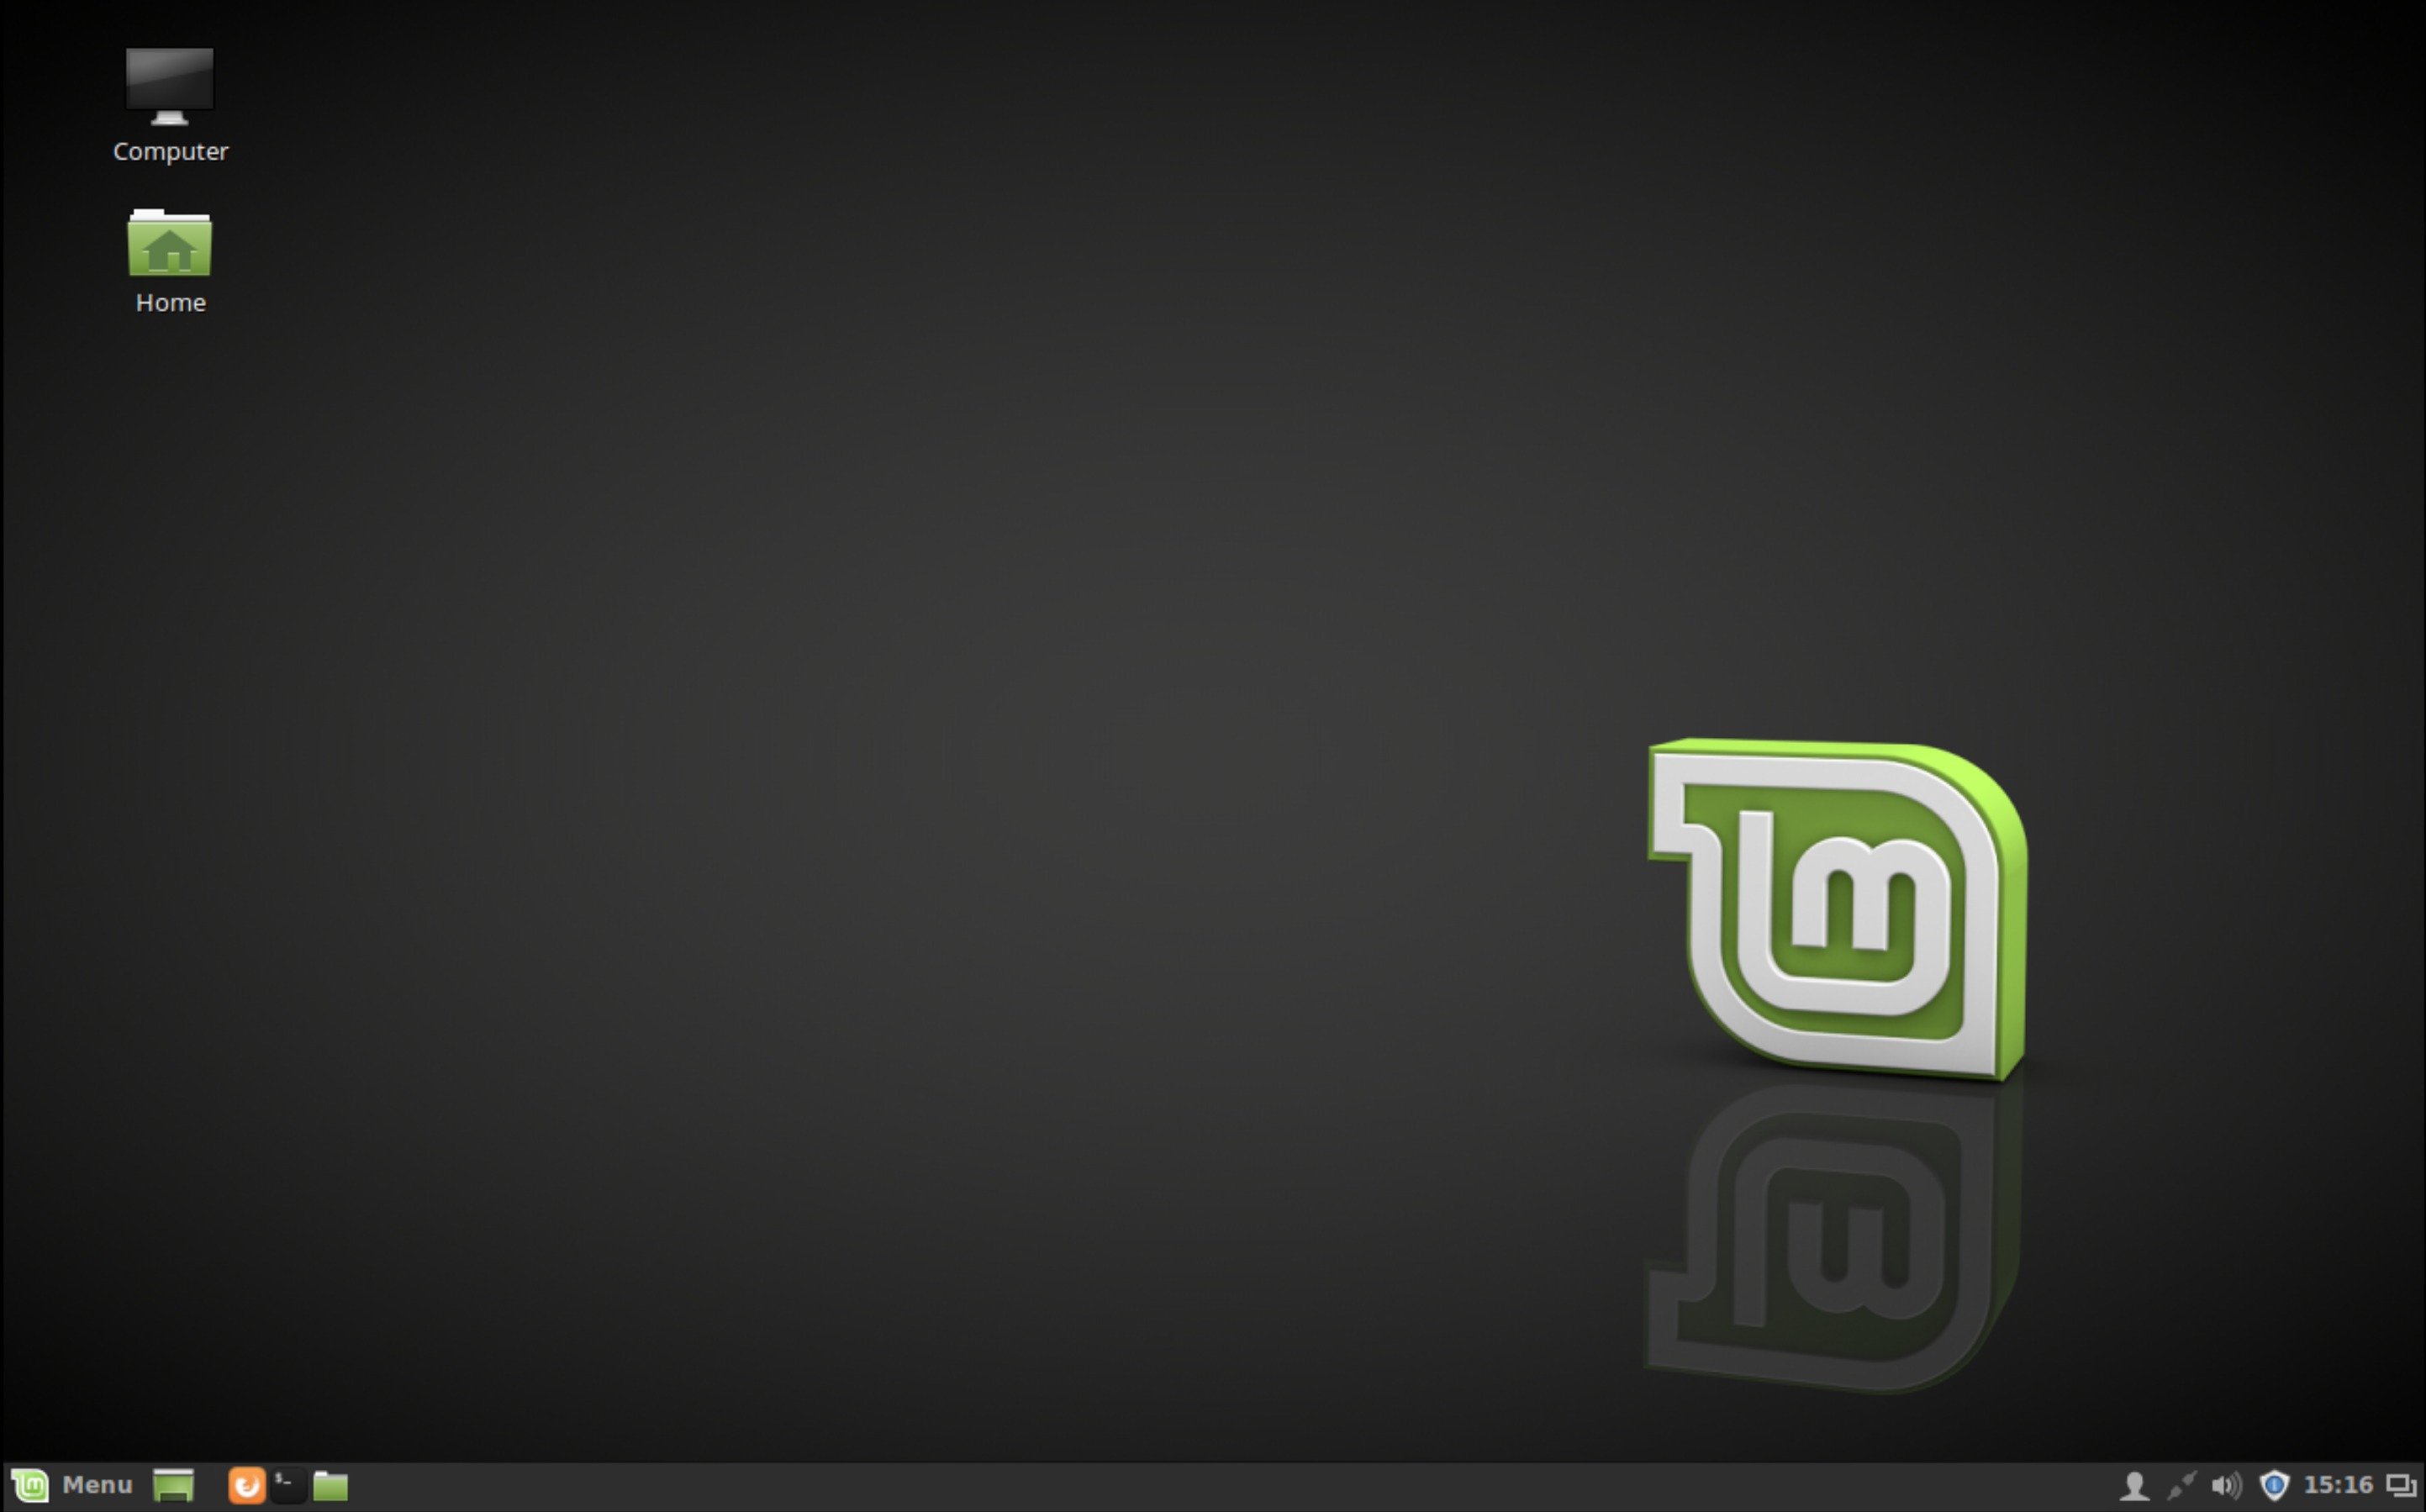 The default Cinnamon desktop in Linux Mint 18.